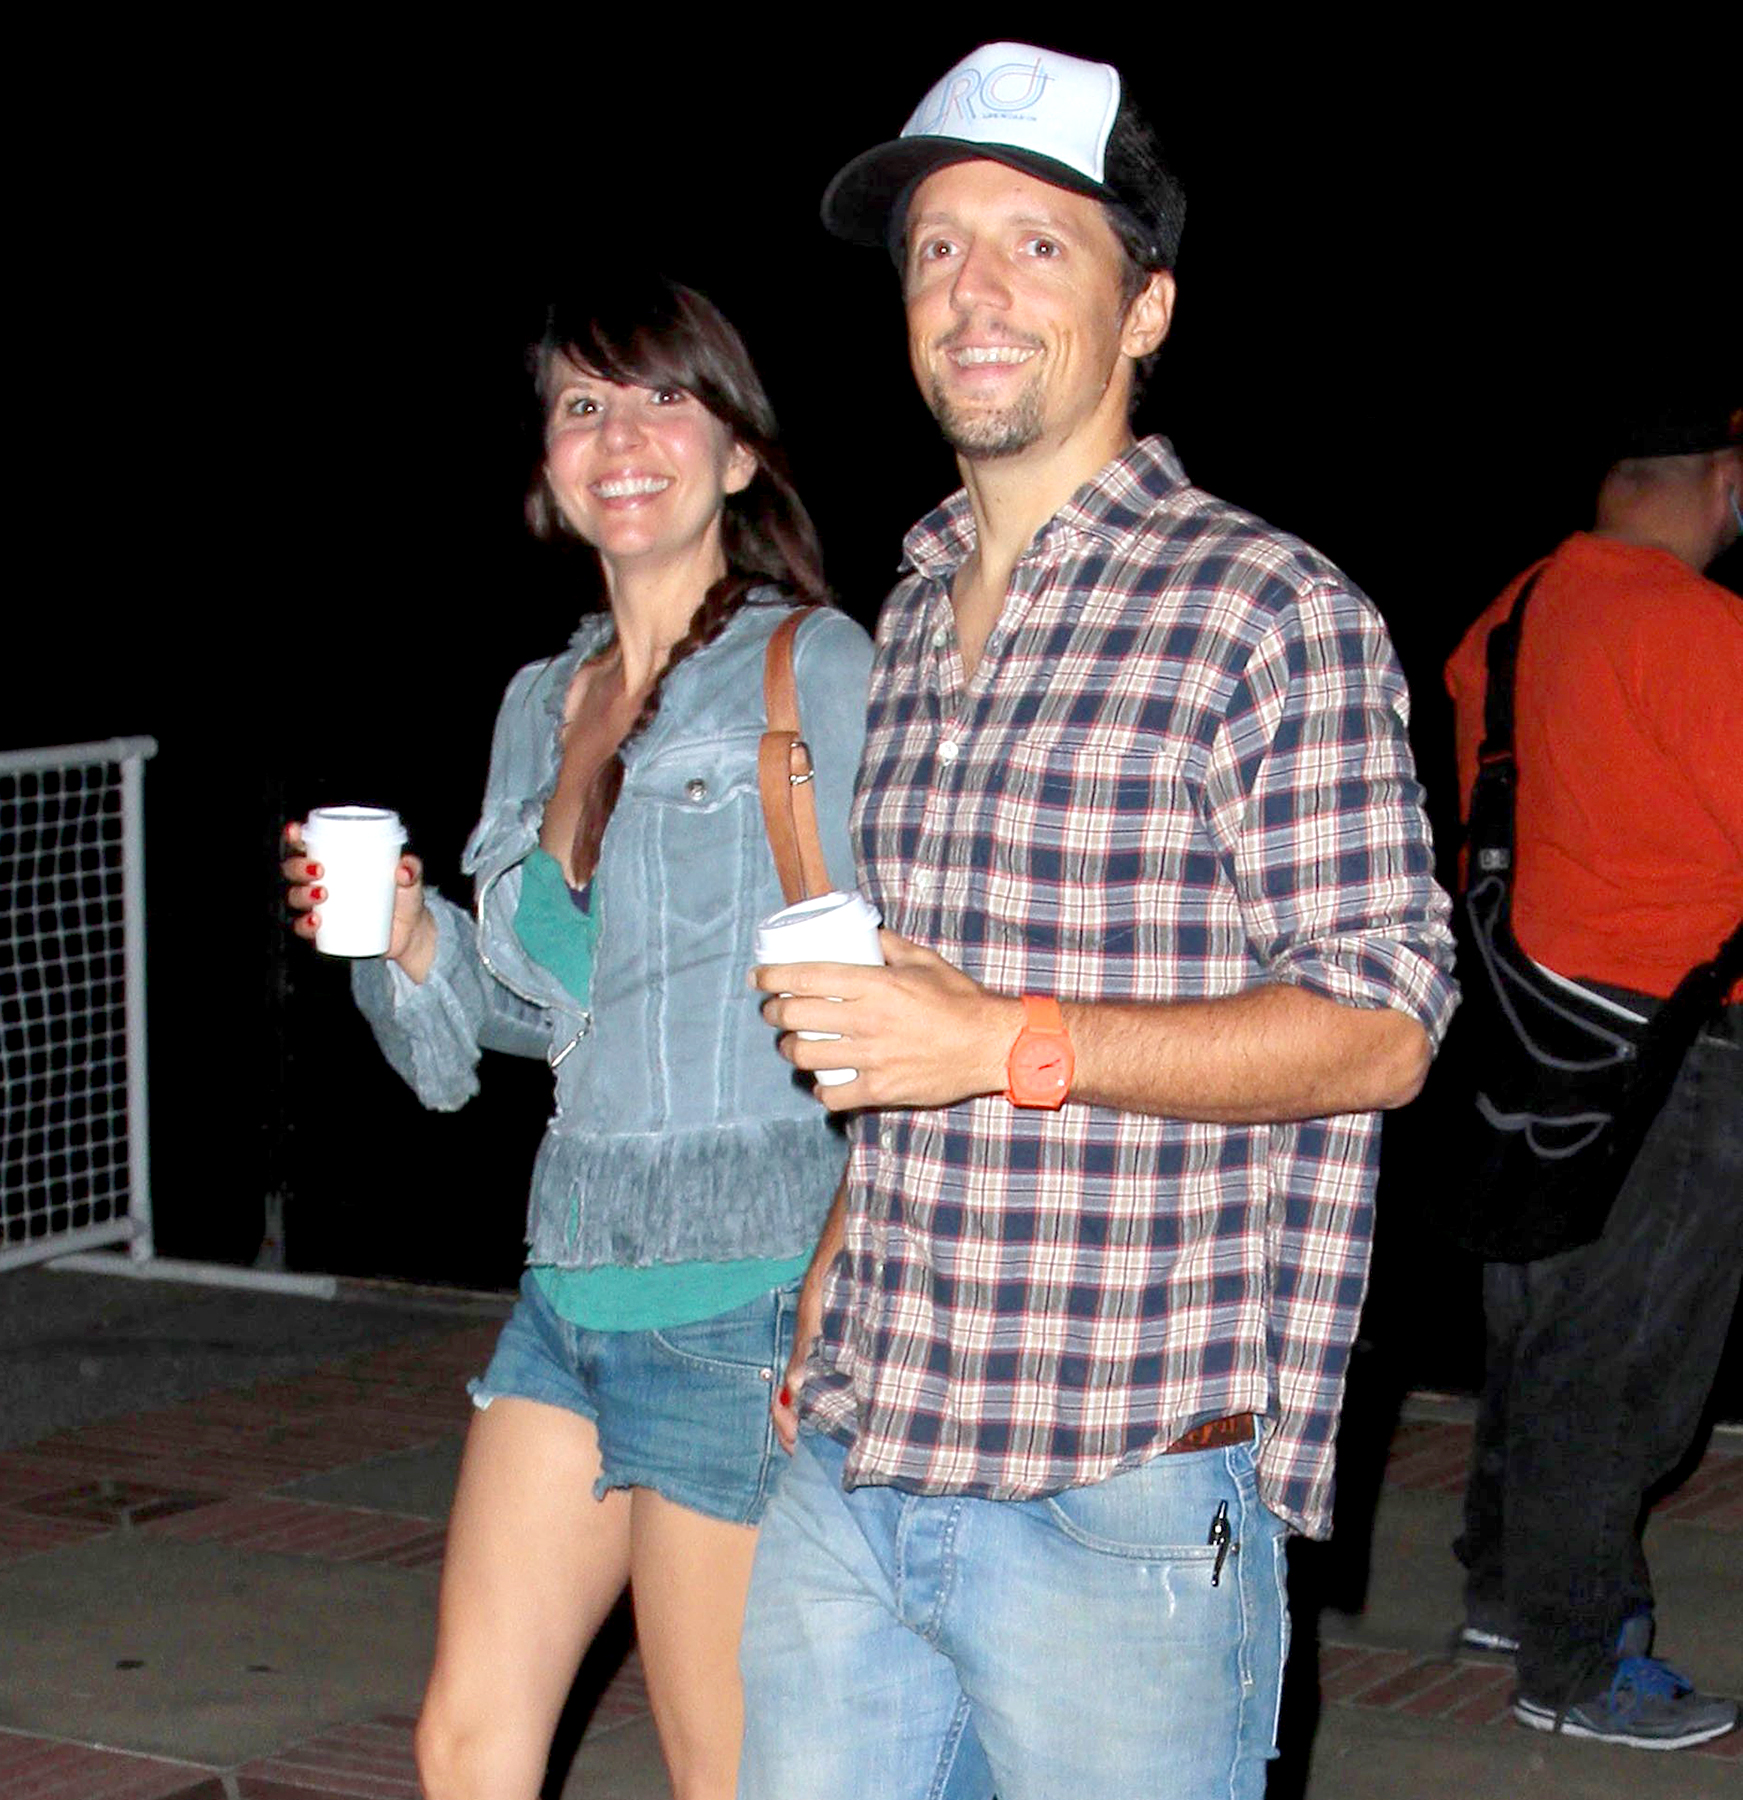 Jason Mraz MARRIES GF Tina Carano!